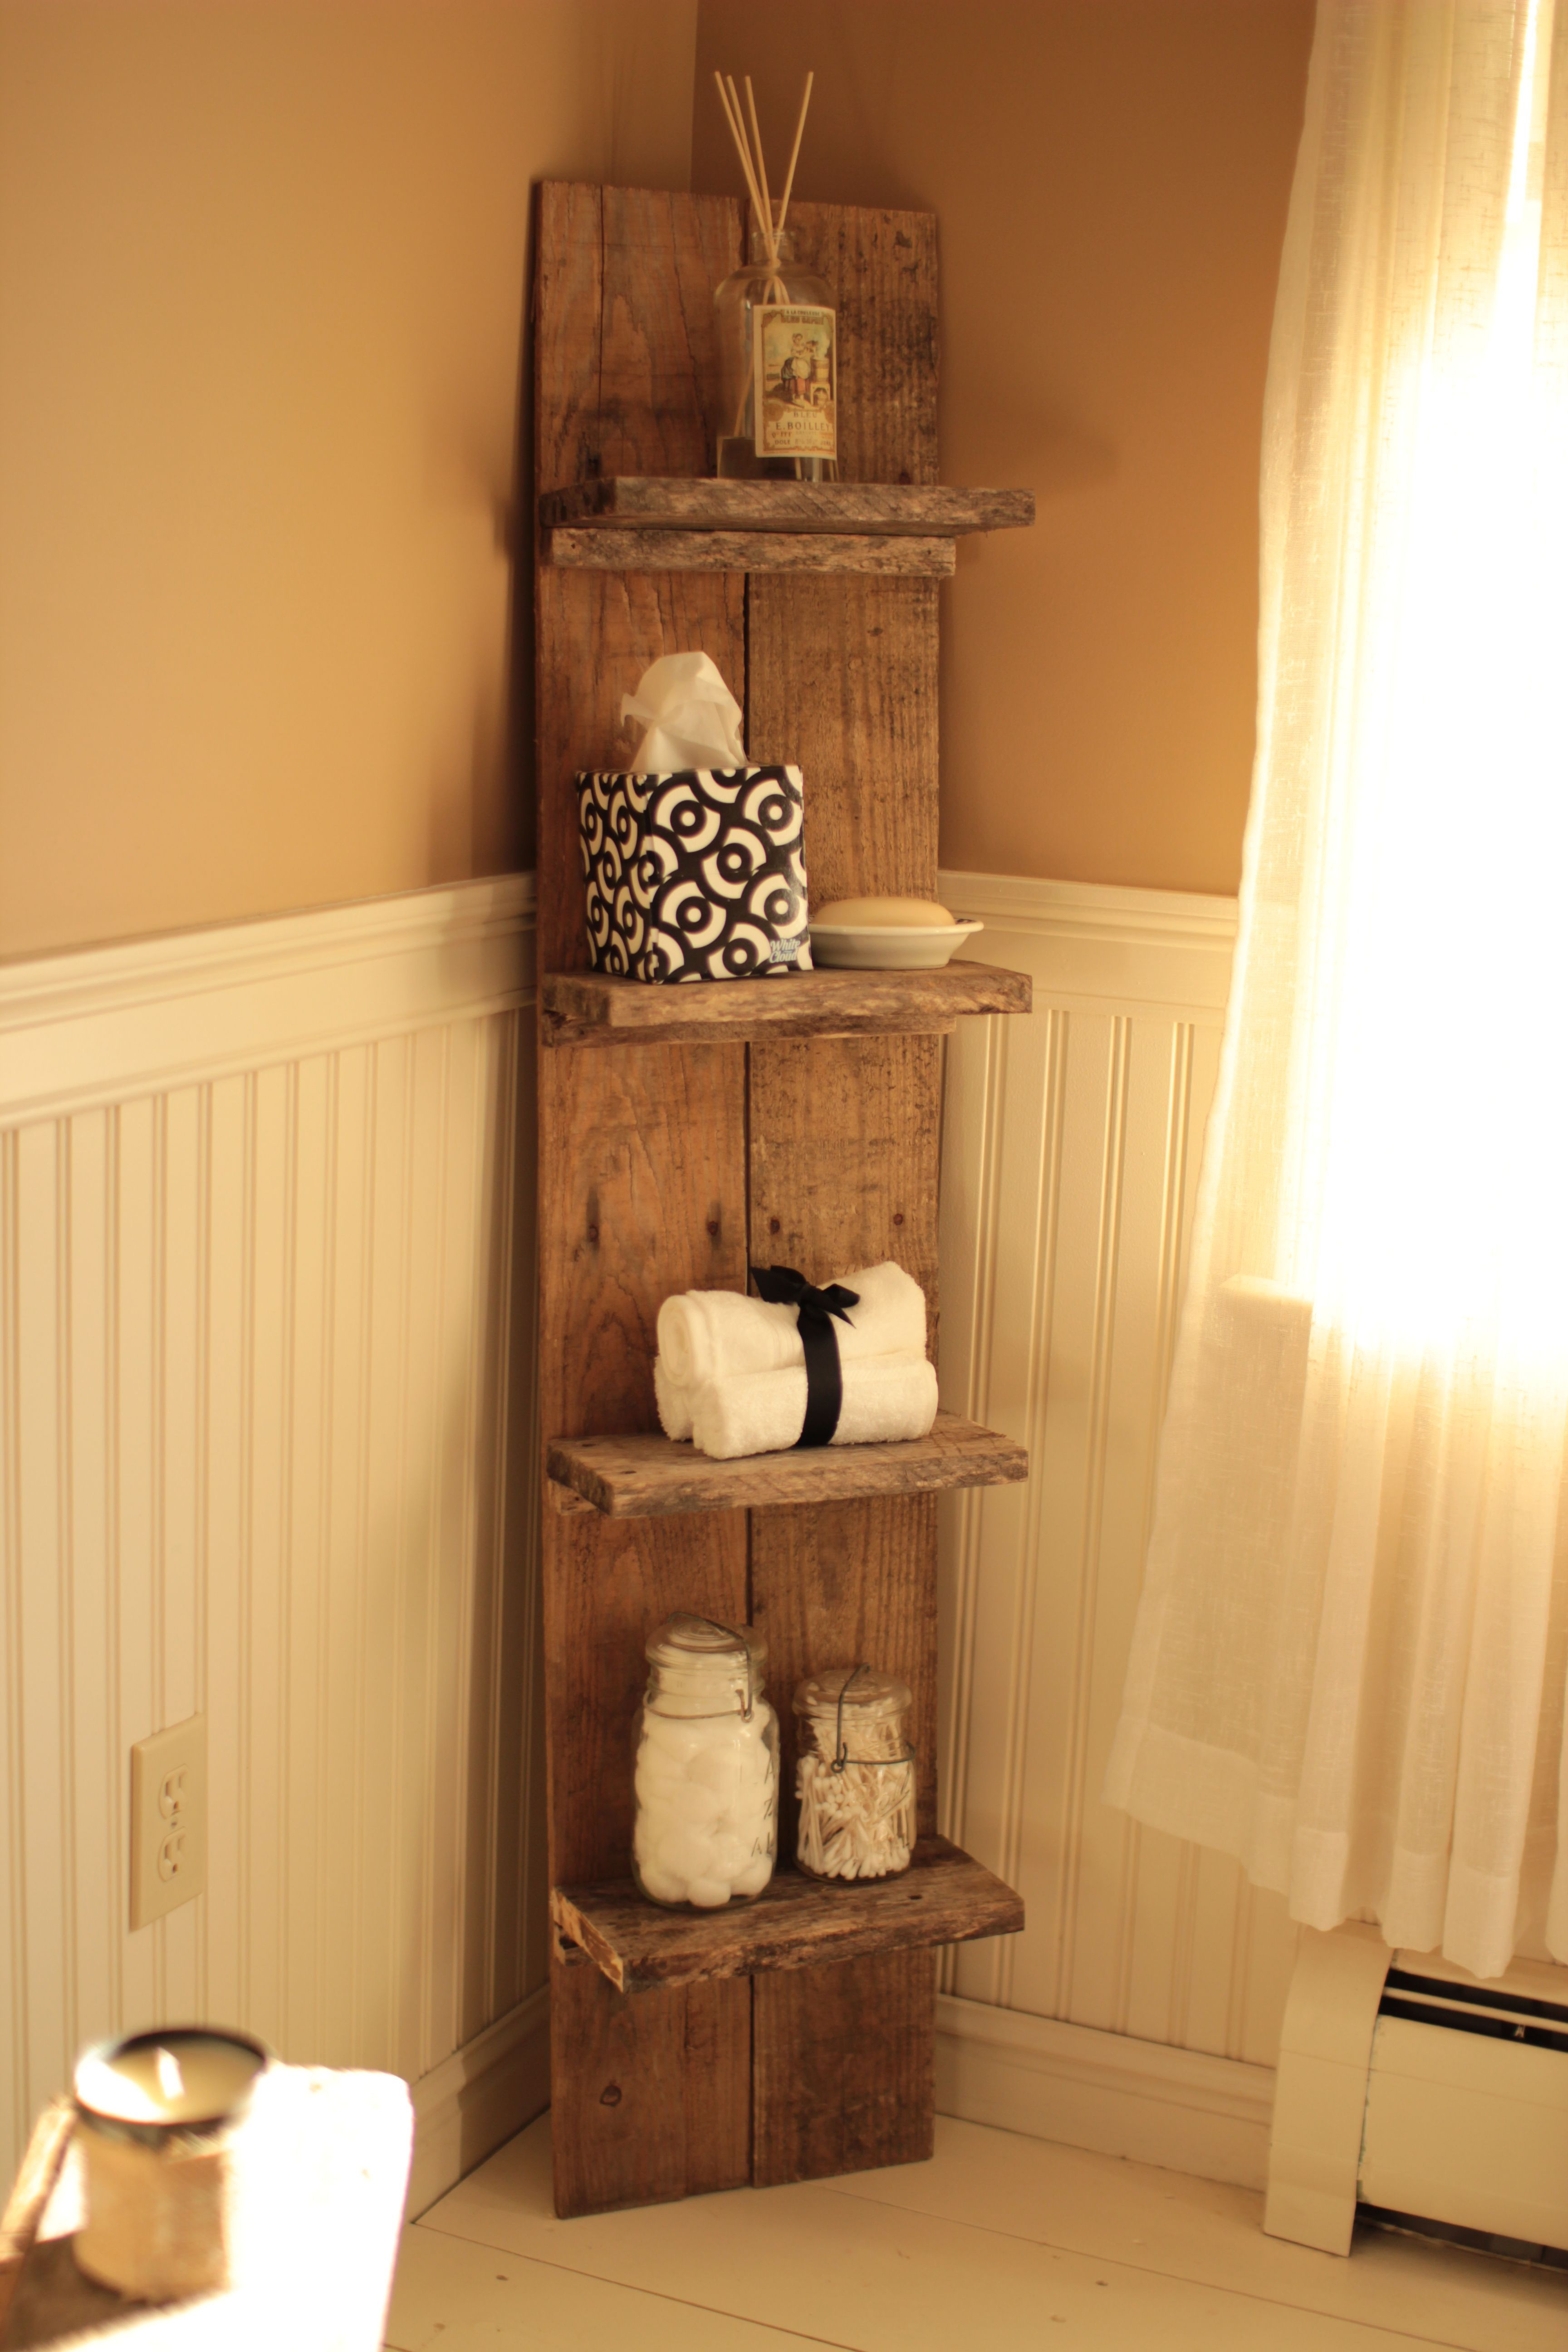 I made a small pallet shelf to fit in a small bathroom, just so